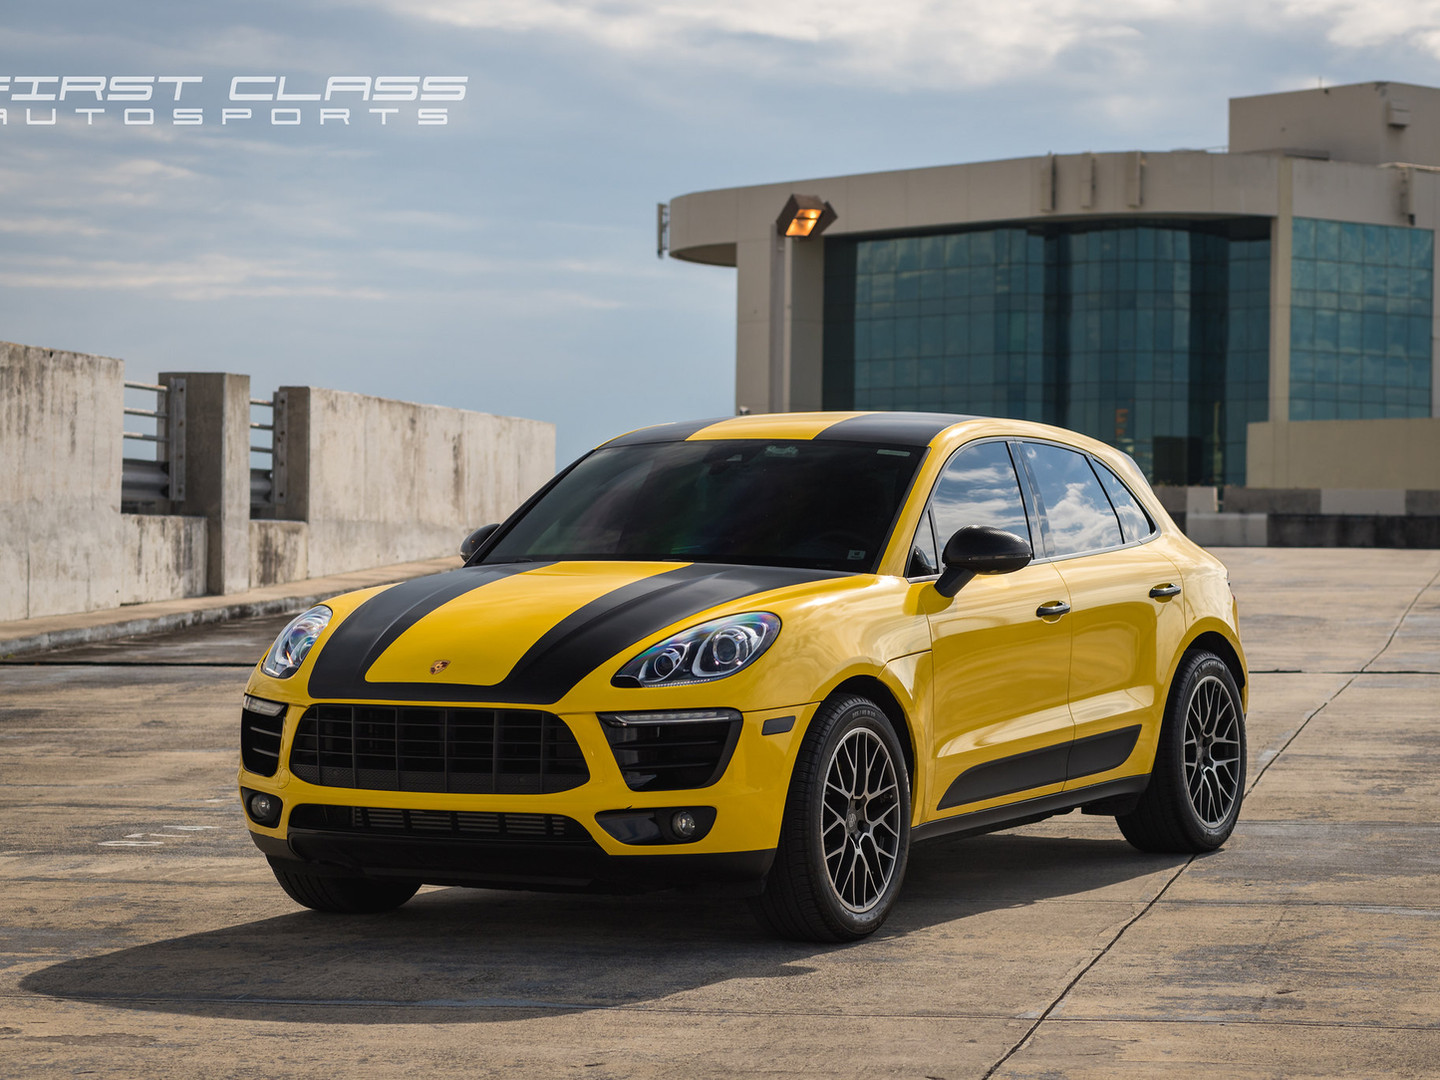 Porsche Macan - Custom racing stripes